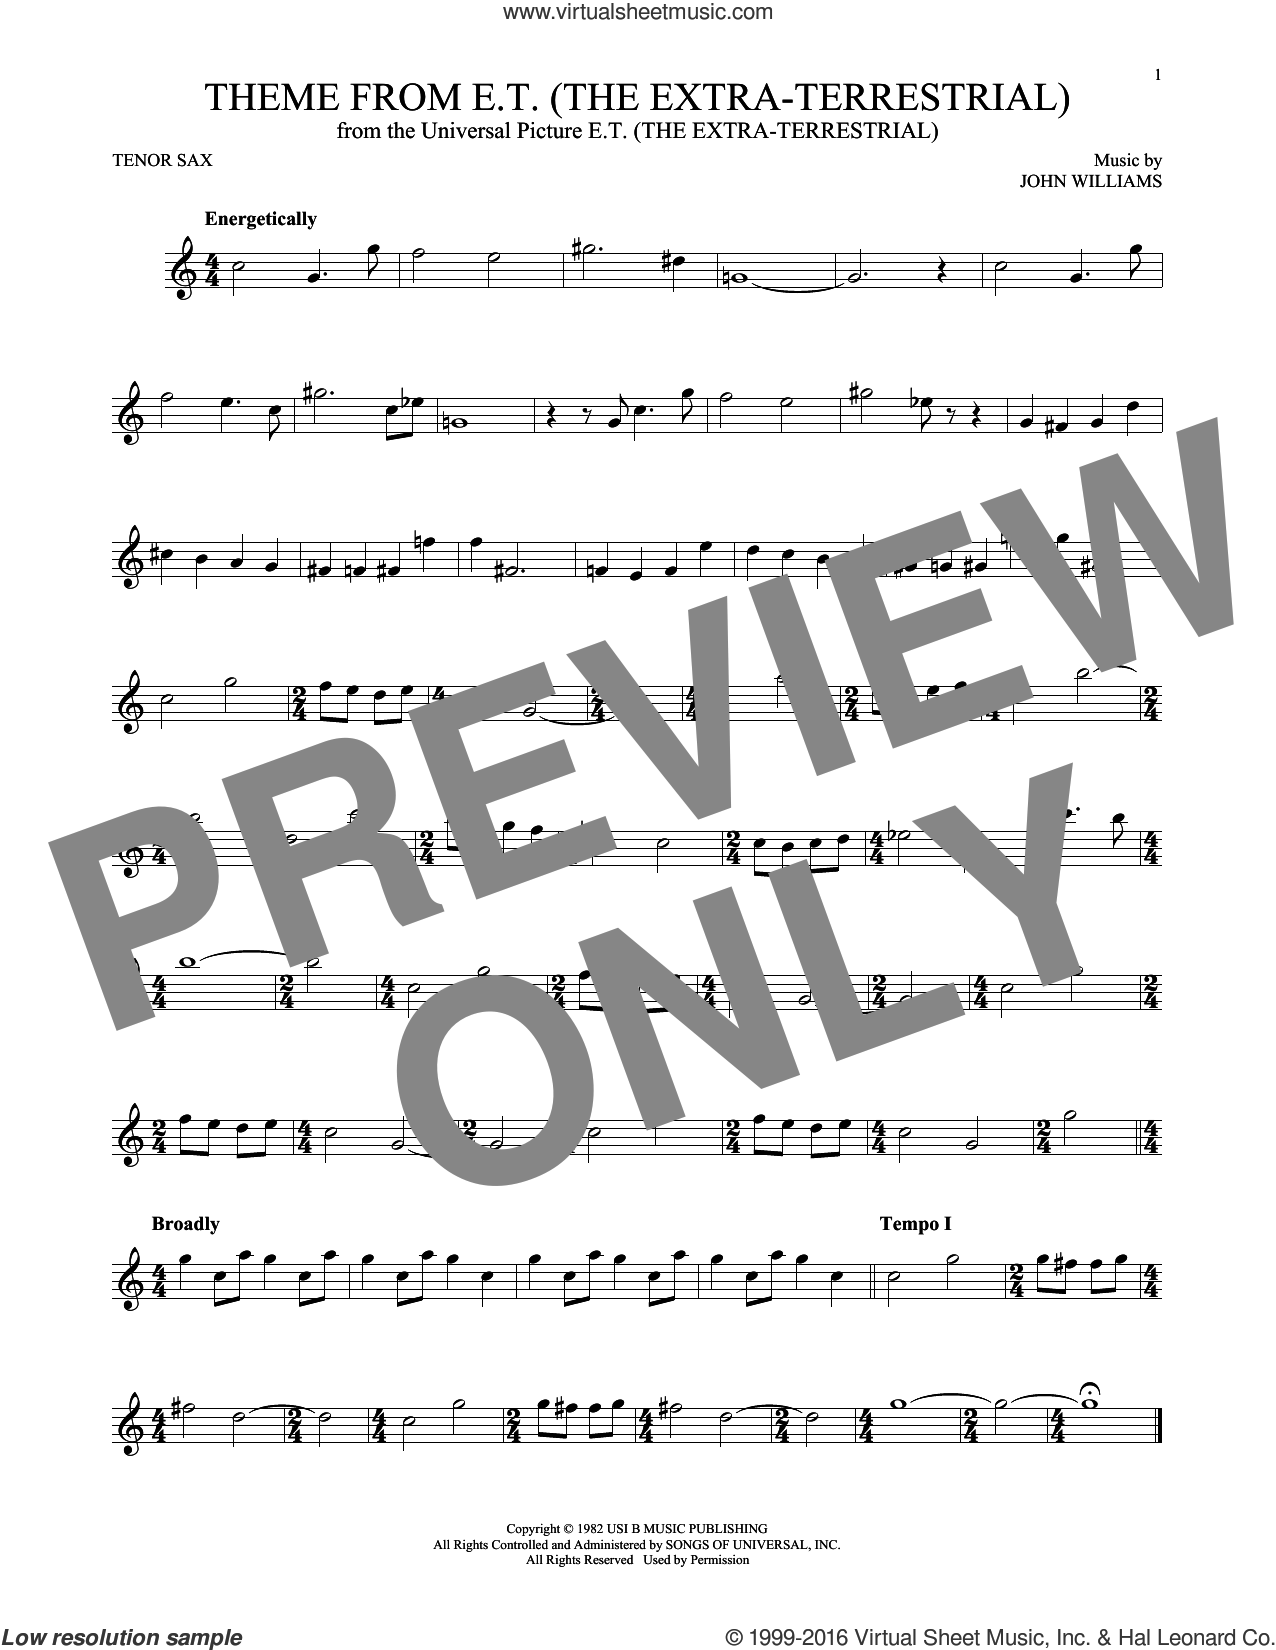 Theme From E.T. (The Extra-Terrestrial) sheet music for tenor saxophone solo by John Williams. Score Image Preview.